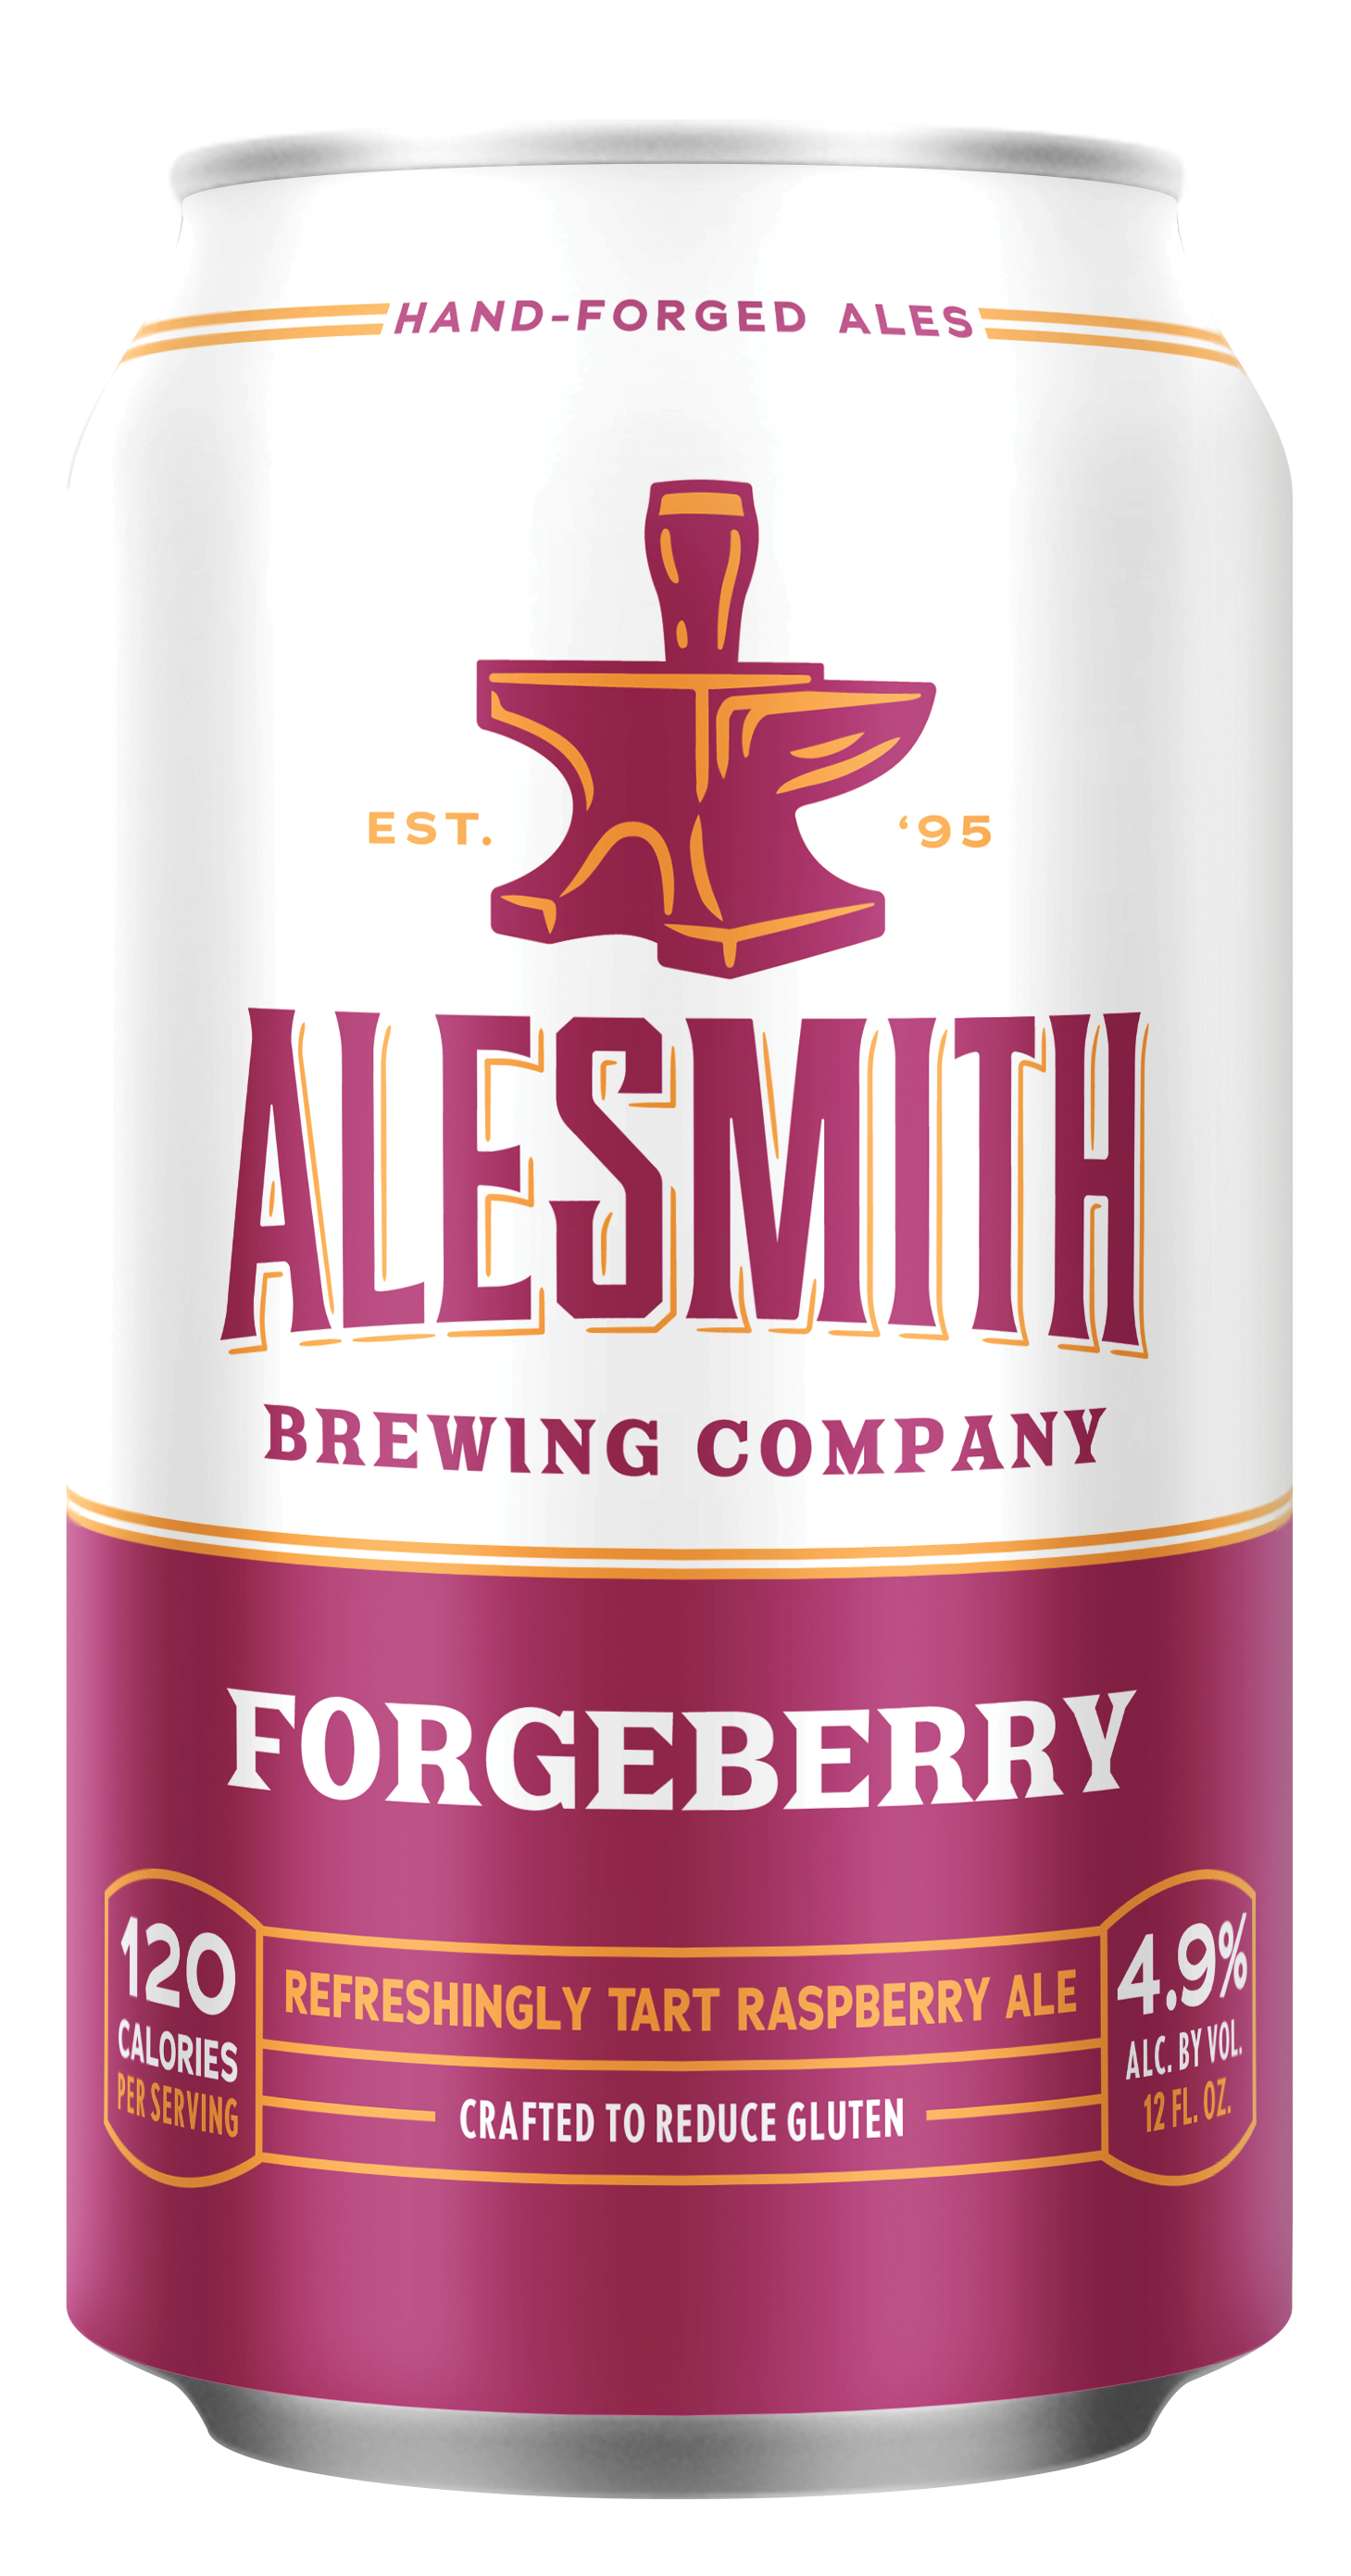 Forgeberry (4.9% ABV) - Alesmith Brewing Company